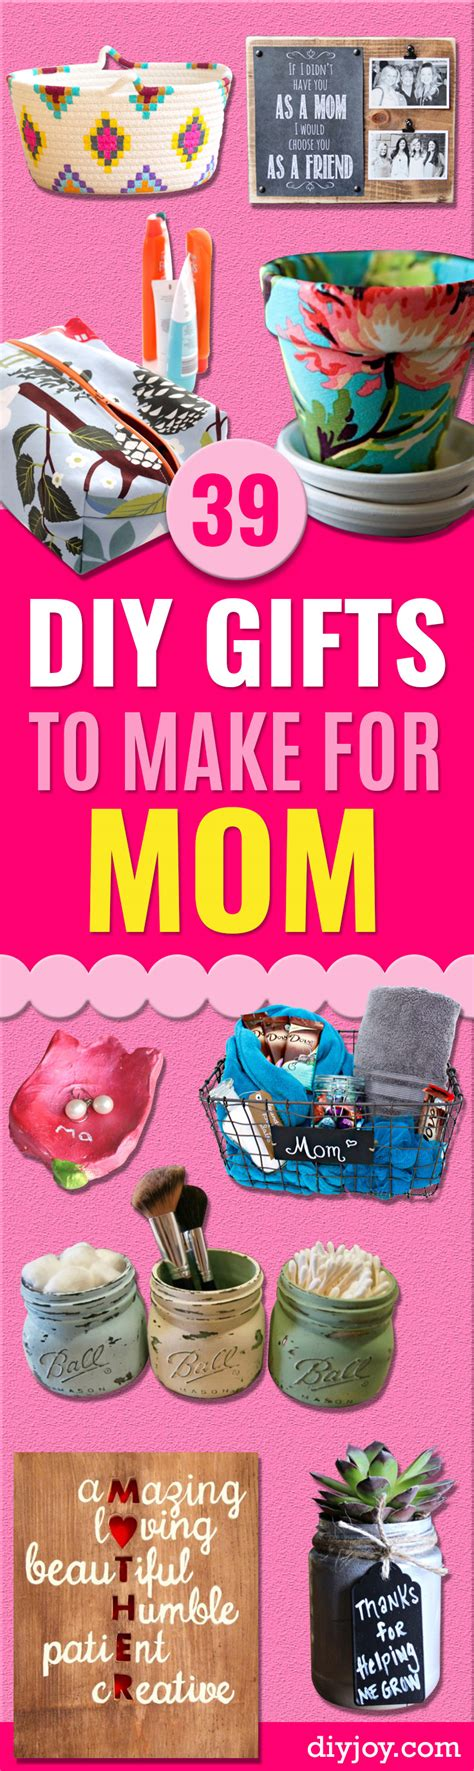 39 creative diy gifts to make for mom page 2 of 8 diy joy